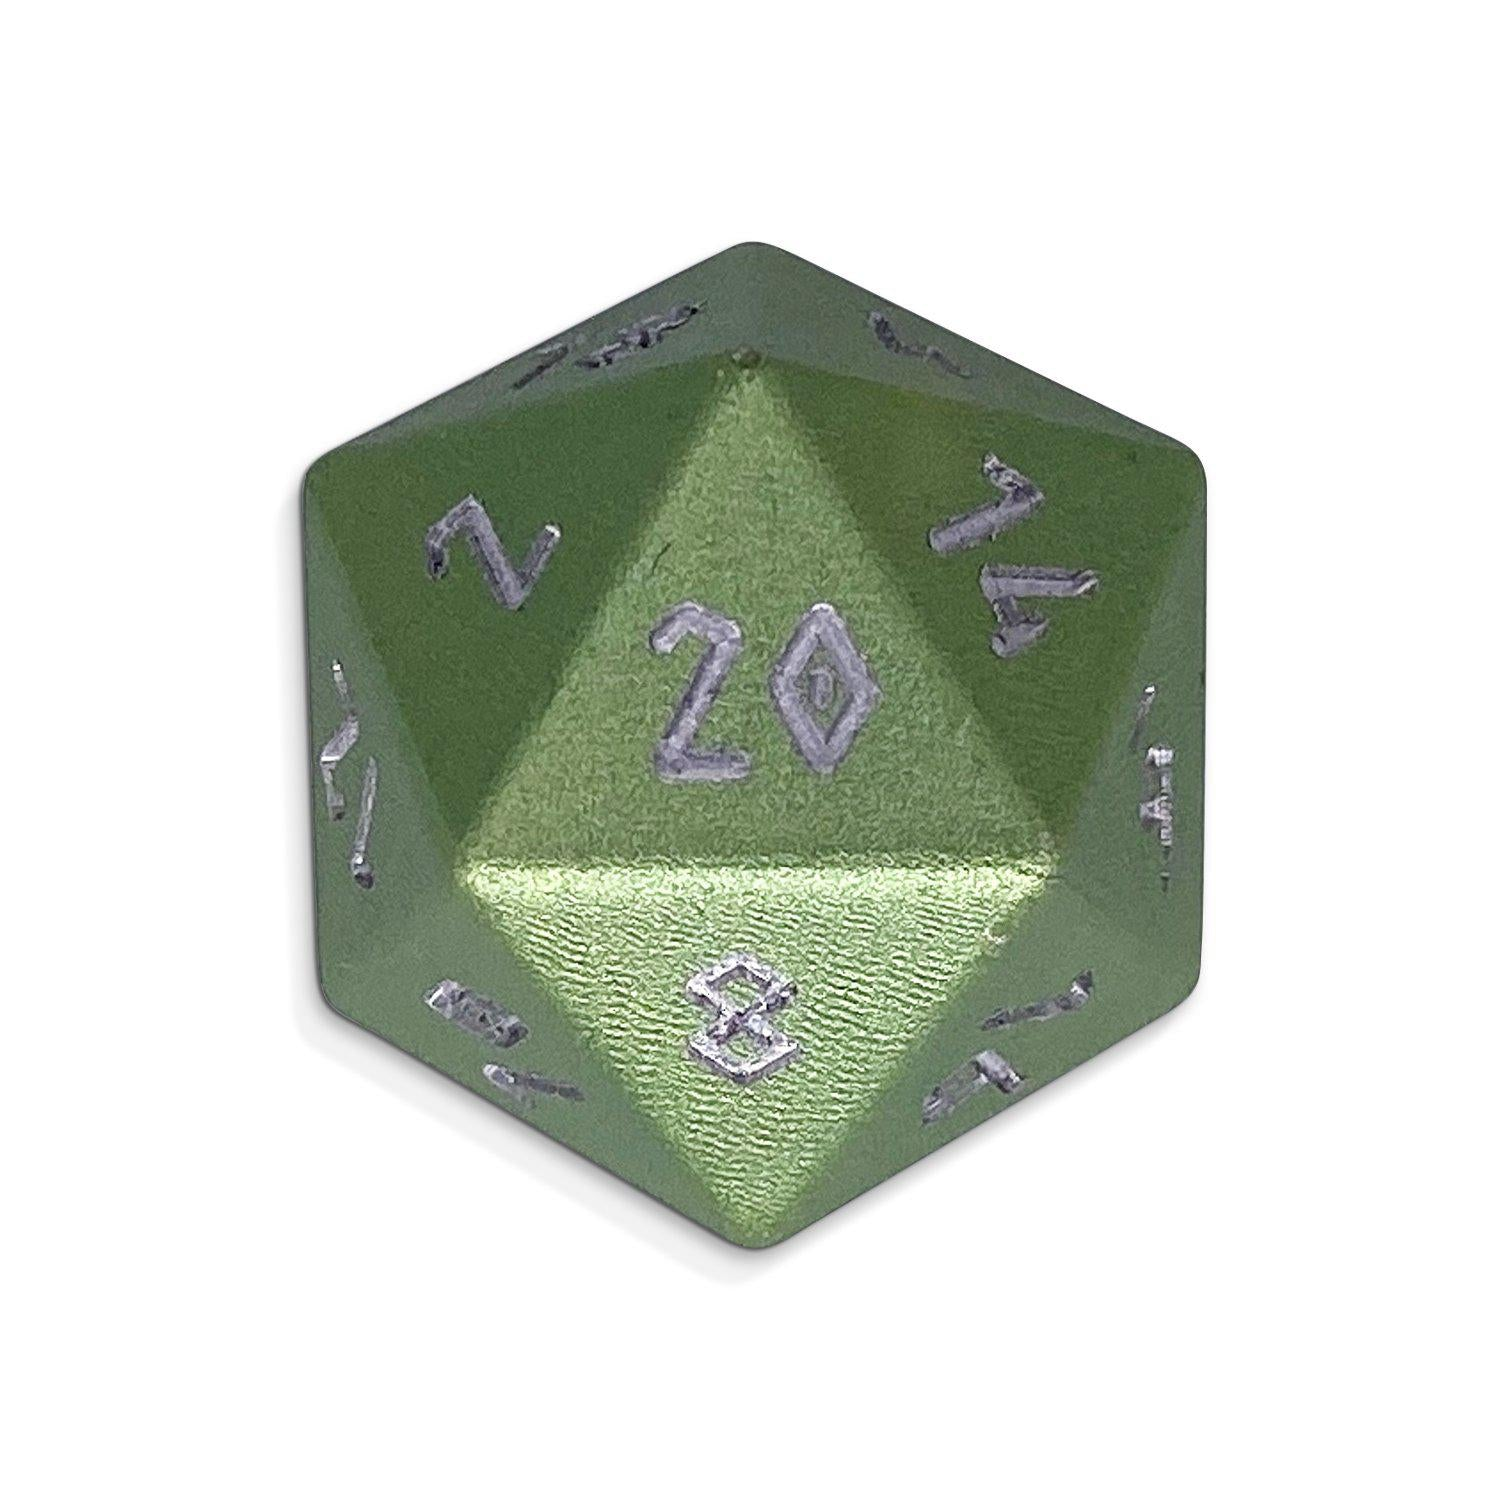 Ranger Green - Single D20 - Aluminum Dice